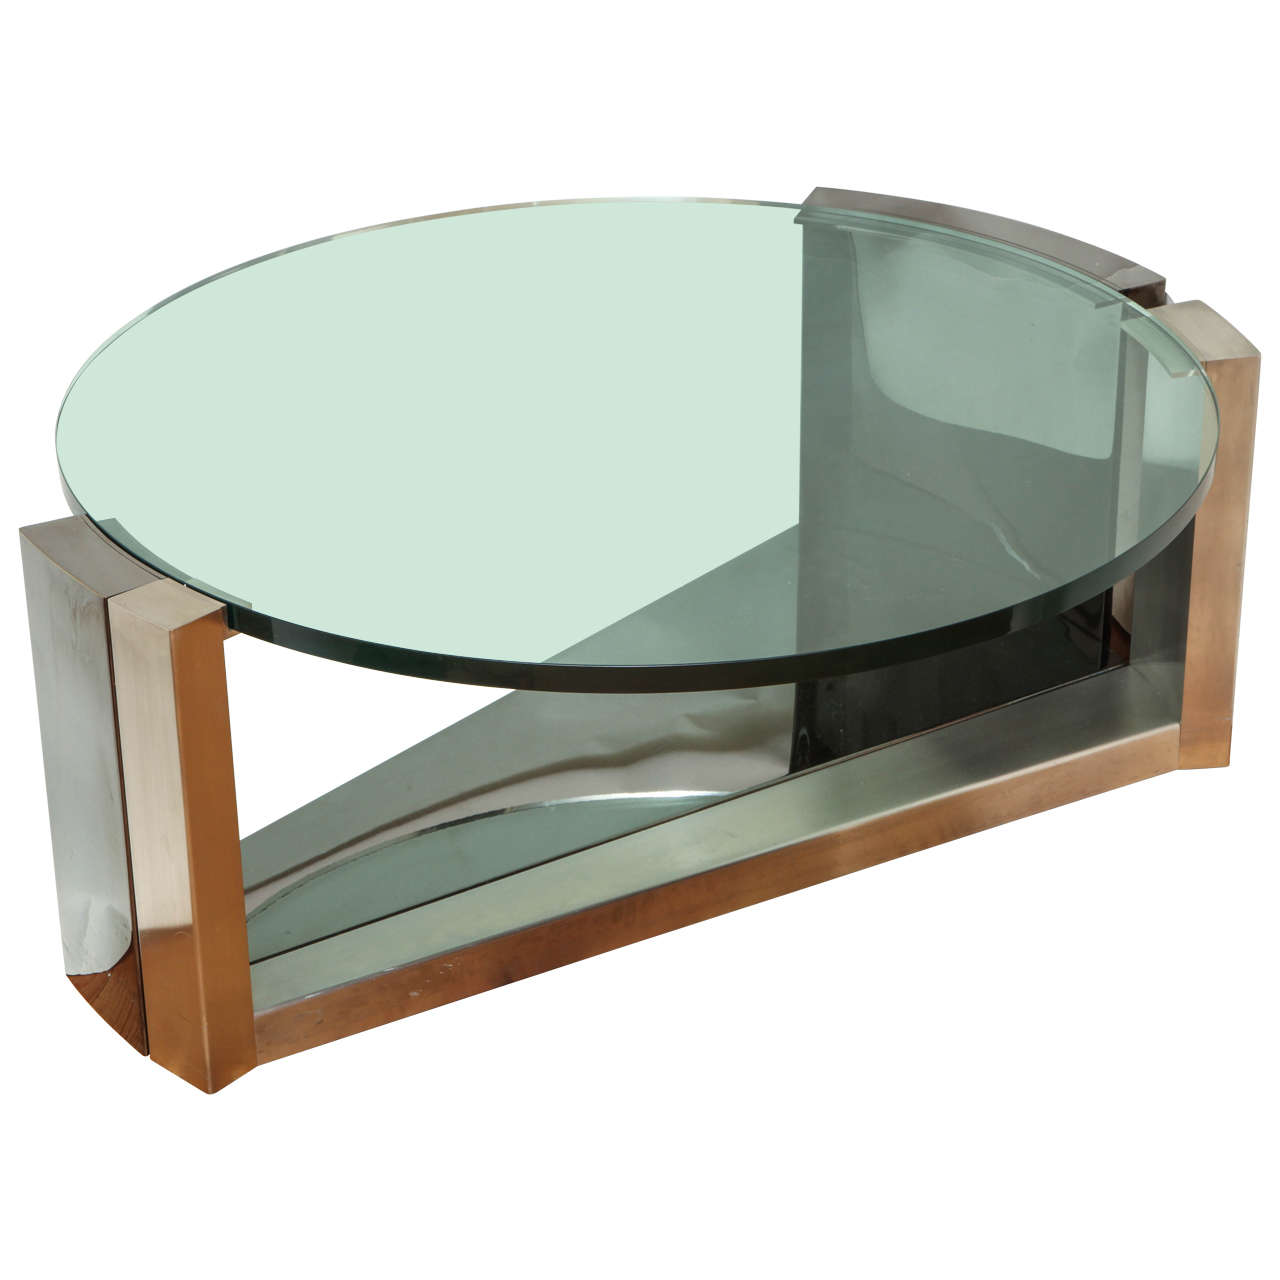 Contemporary design round coffee table for sale at 1stdibs for Round contemporary coffee table